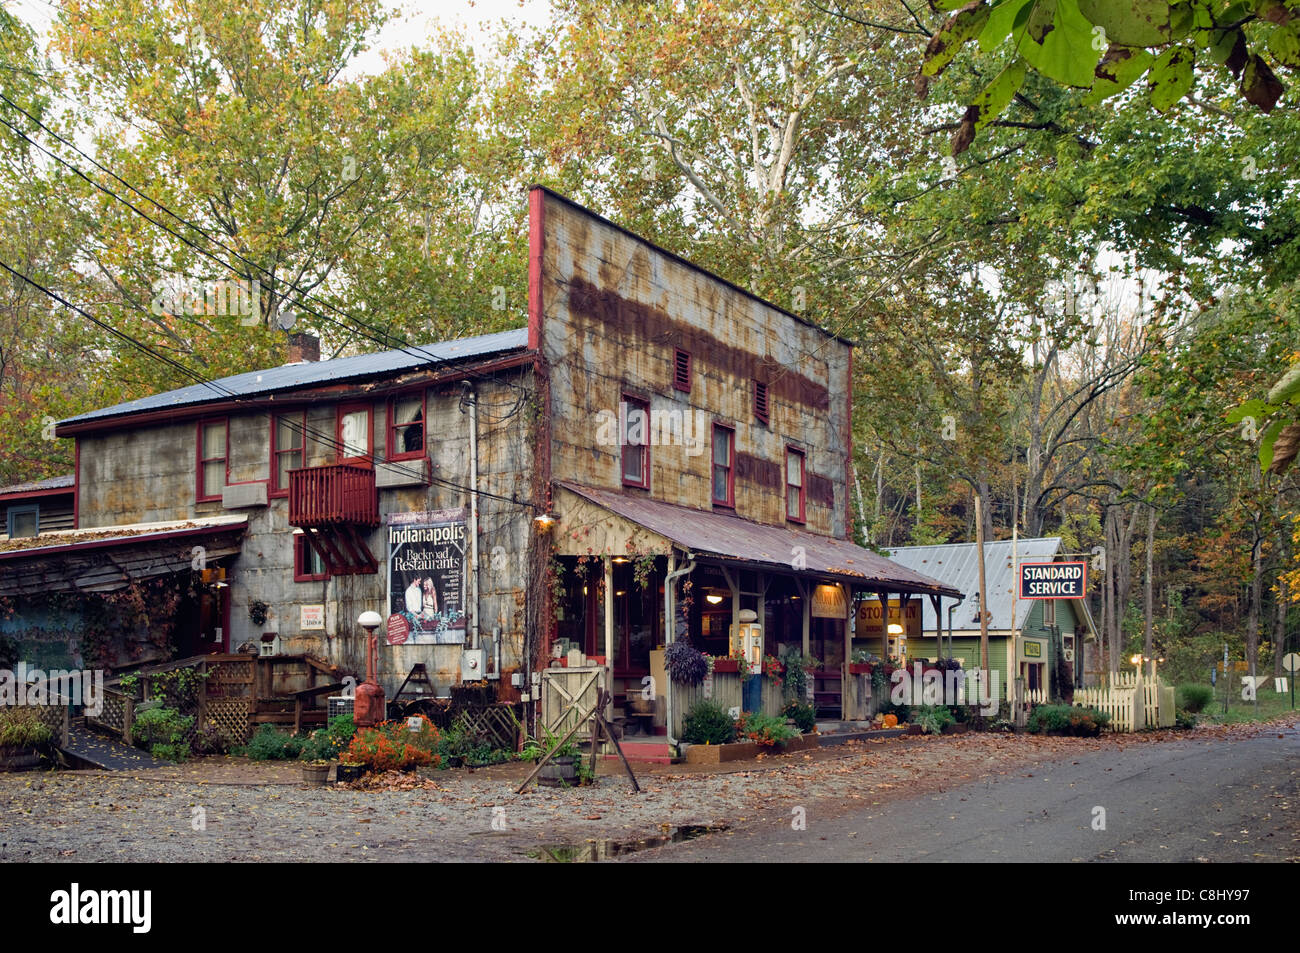 The Story Inn in Story, Indiana - Stock Image